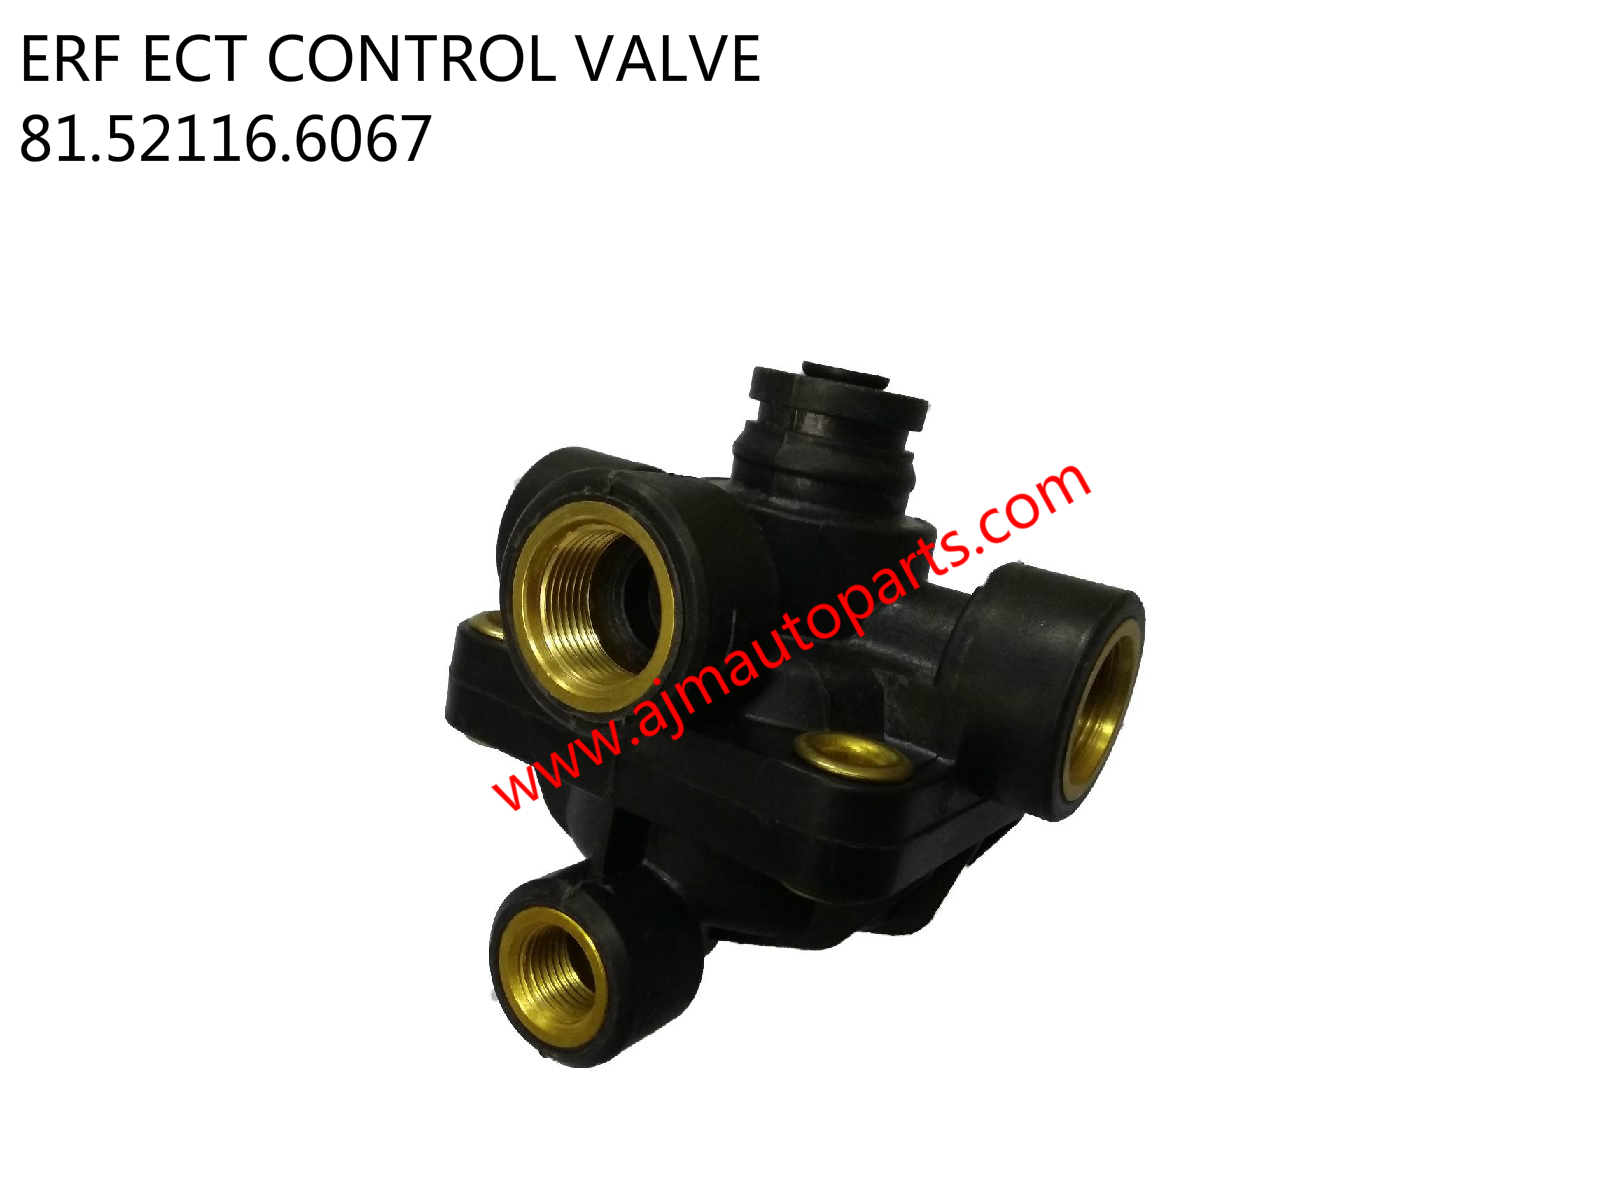 ERF ECT CONTROL VALVE-81.52116.6067